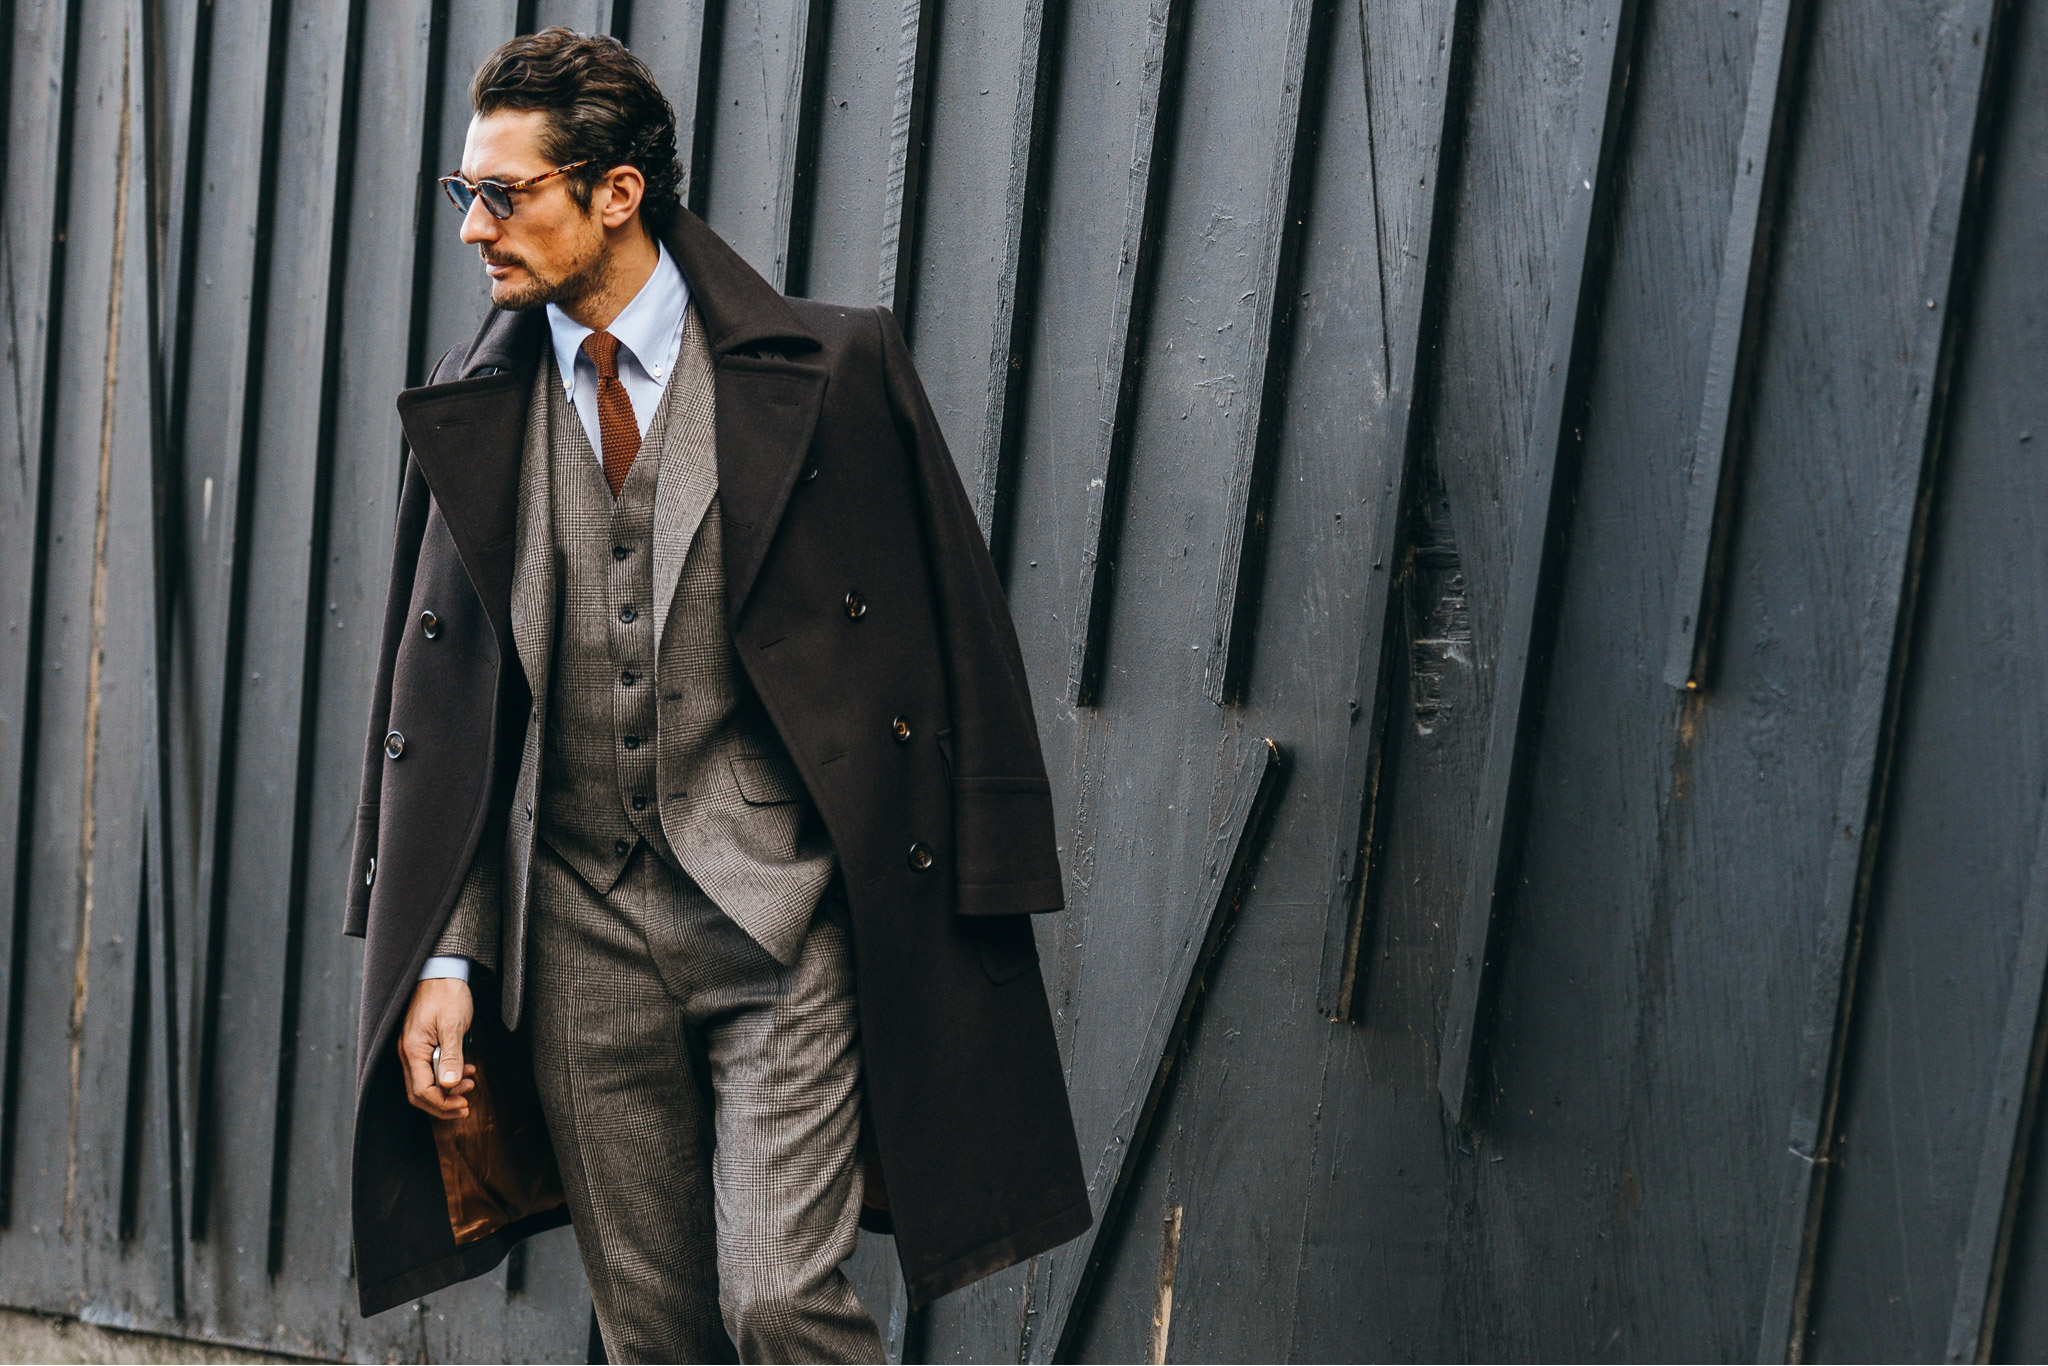 7de2e92d416be Style Inspiration #7: Milan Vukmirovic | The Confused Dasher